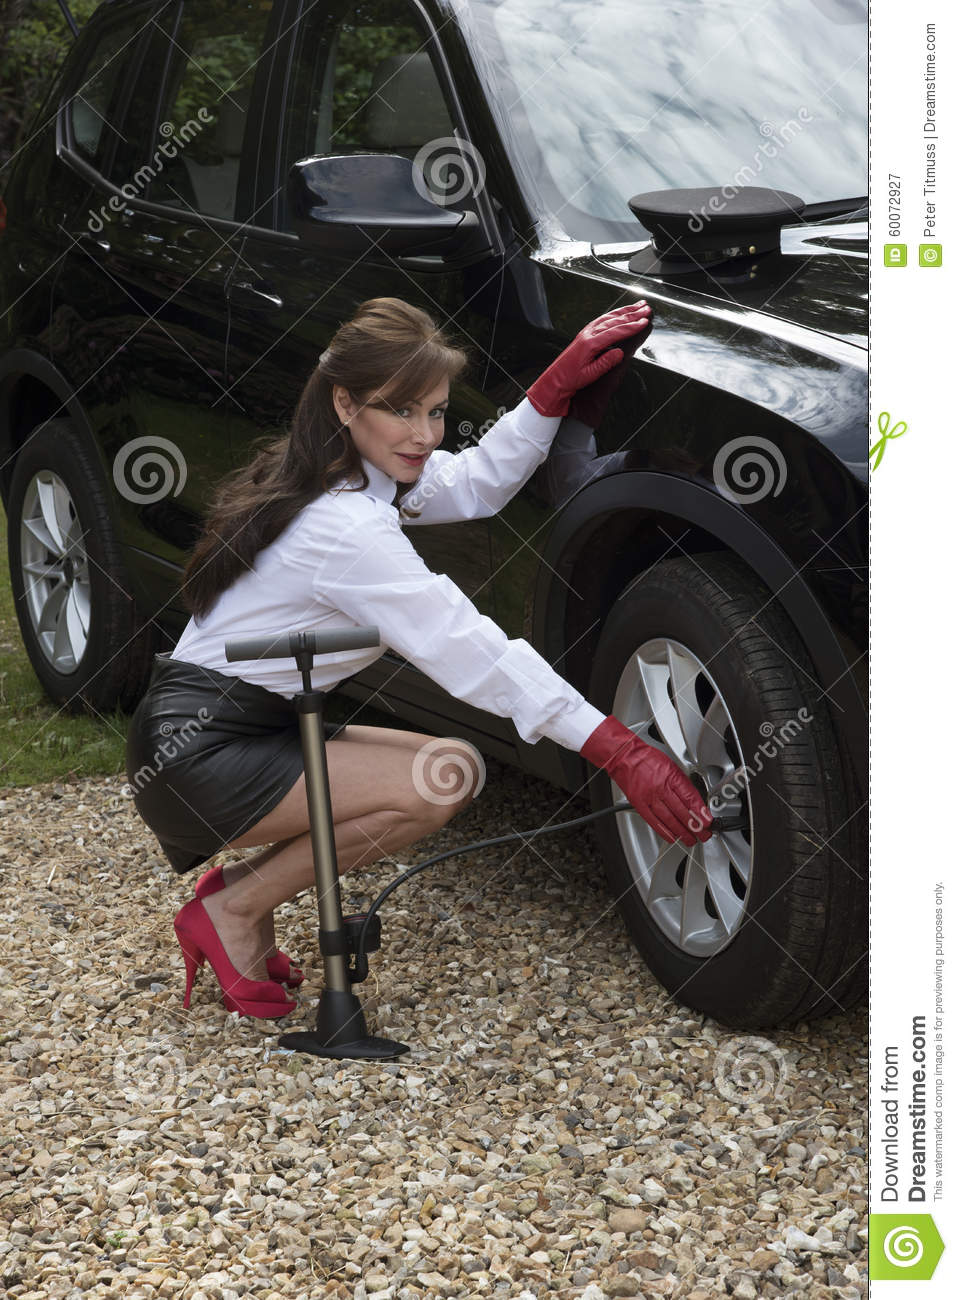 Checking Tire Pressure >> Woman Pumping Up Car Tyre Stock Photo - Image: 60072927